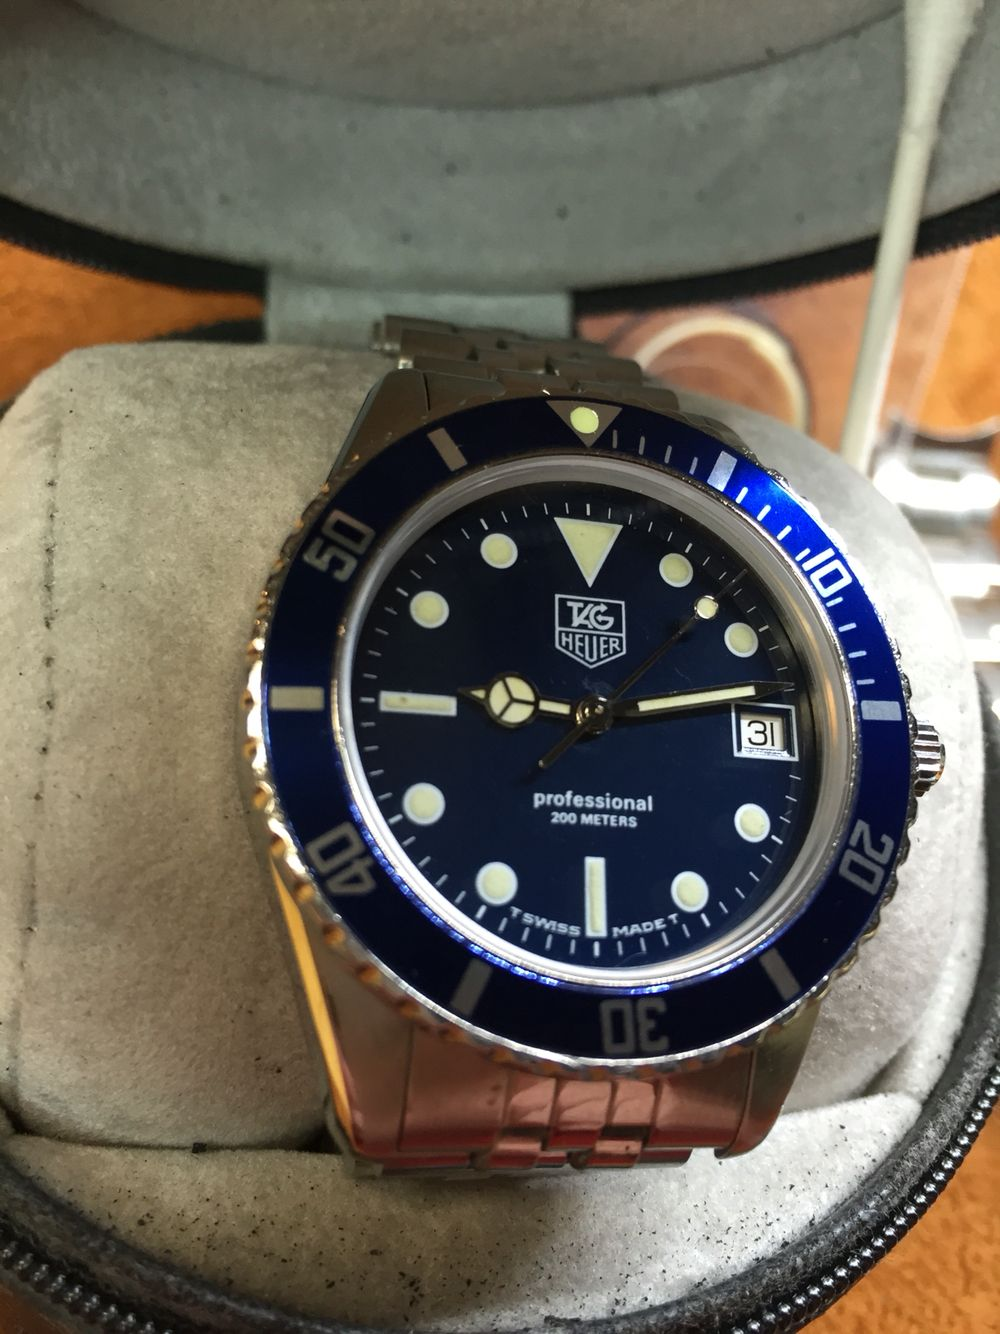 980.613 pics    You can contact me at jkbenn02 (yahoo) if you have any other questions or requests.   Model number 980.613N/1 38mm WITHOUT crown 40mm WITH crown This is the elusive blue dial/bezel version which isn't nearly as common as the regular black dial/bezel version.